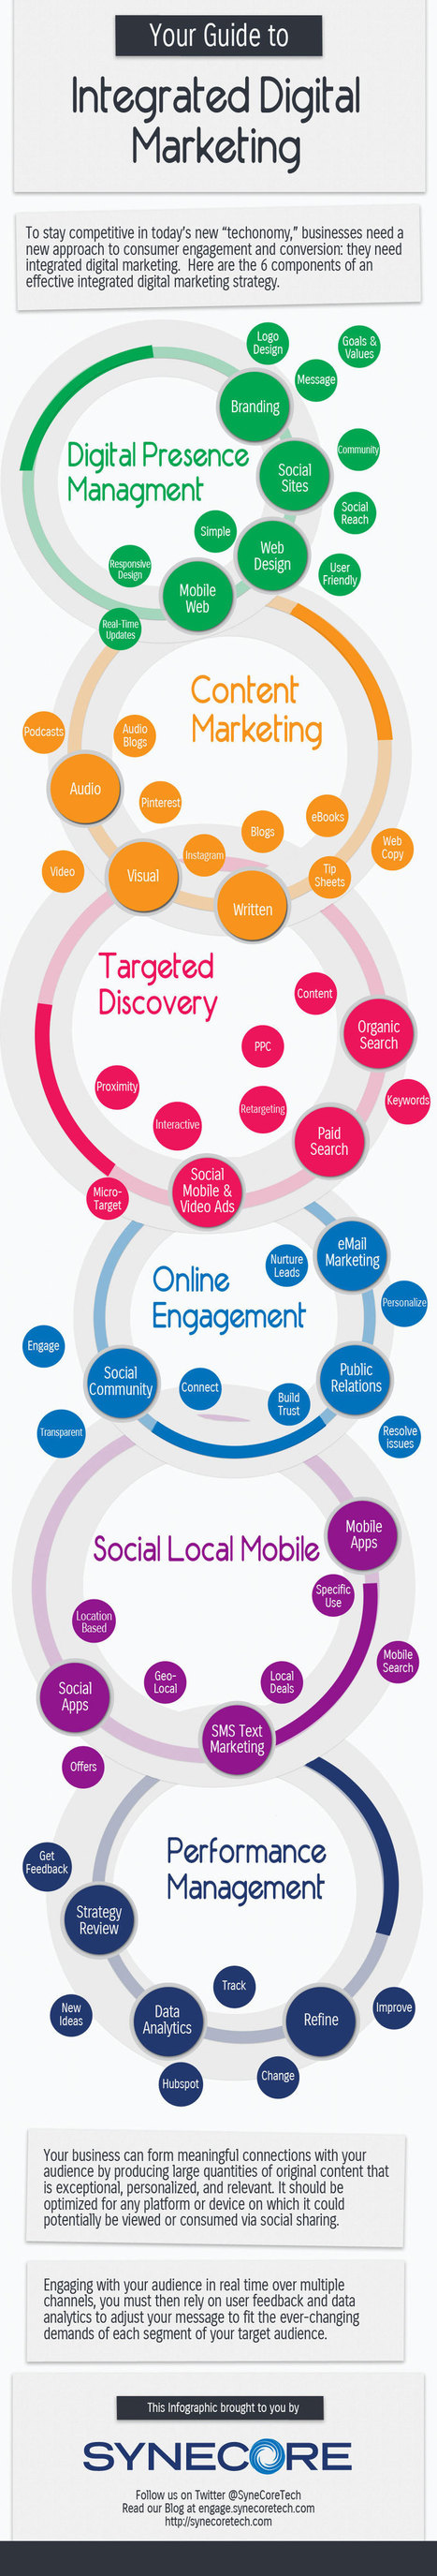 A Guide to Integrated Digital Marketing [INFOGRAPHIC] | Social Media Marketing & Redes Sociales | Scoop.it